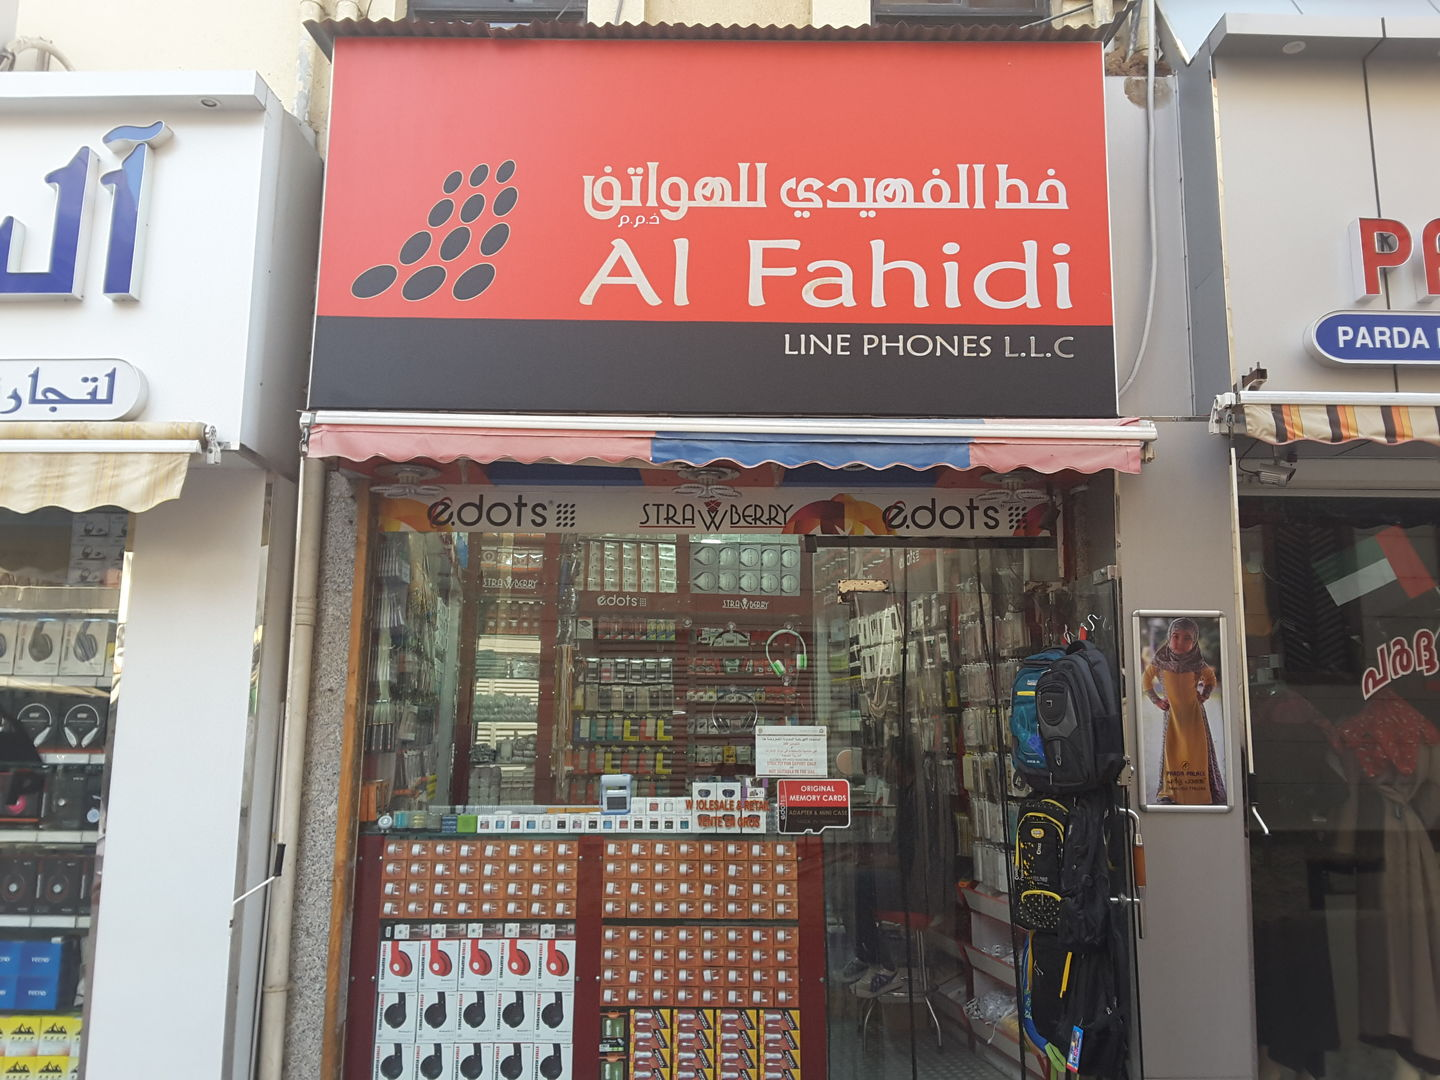 HiDubai-business-al-fahidi-line-phones-home-internet-tv-mobile-baniyas-square-dubai-2